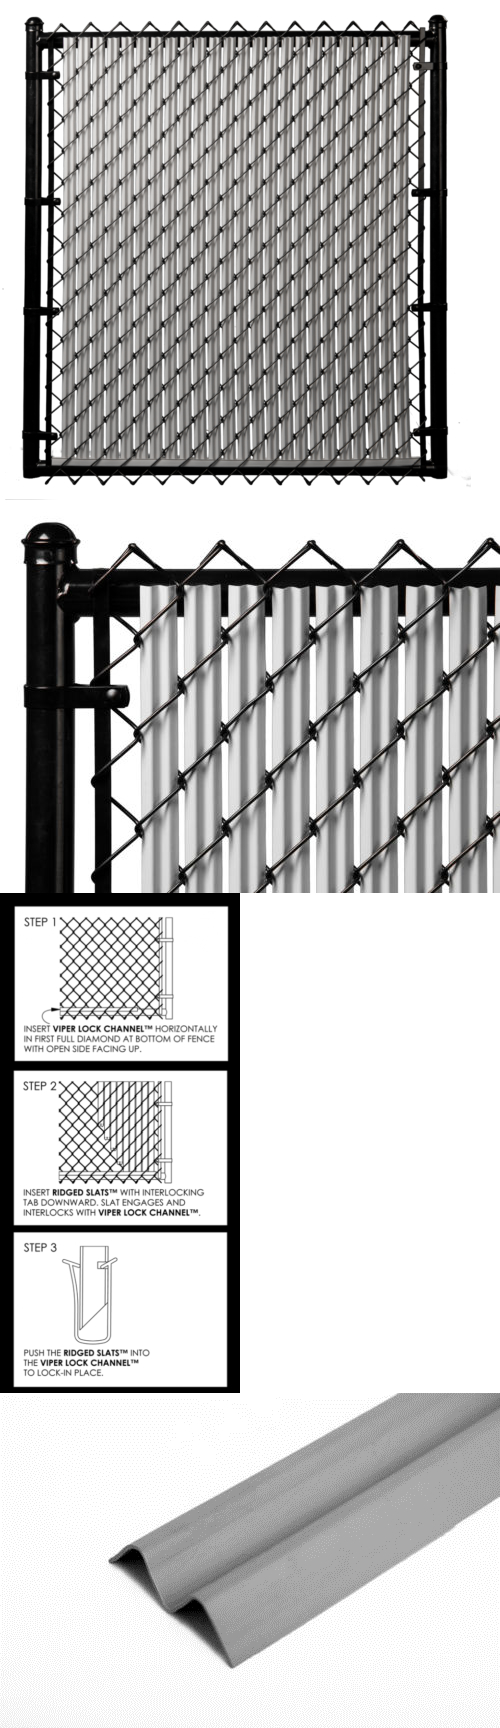 Privacy screen for chain link fence ebay - Chain Link Fencing 180984 Slat Depot Gray 8ft Ridged Slat For Chain Link Fence